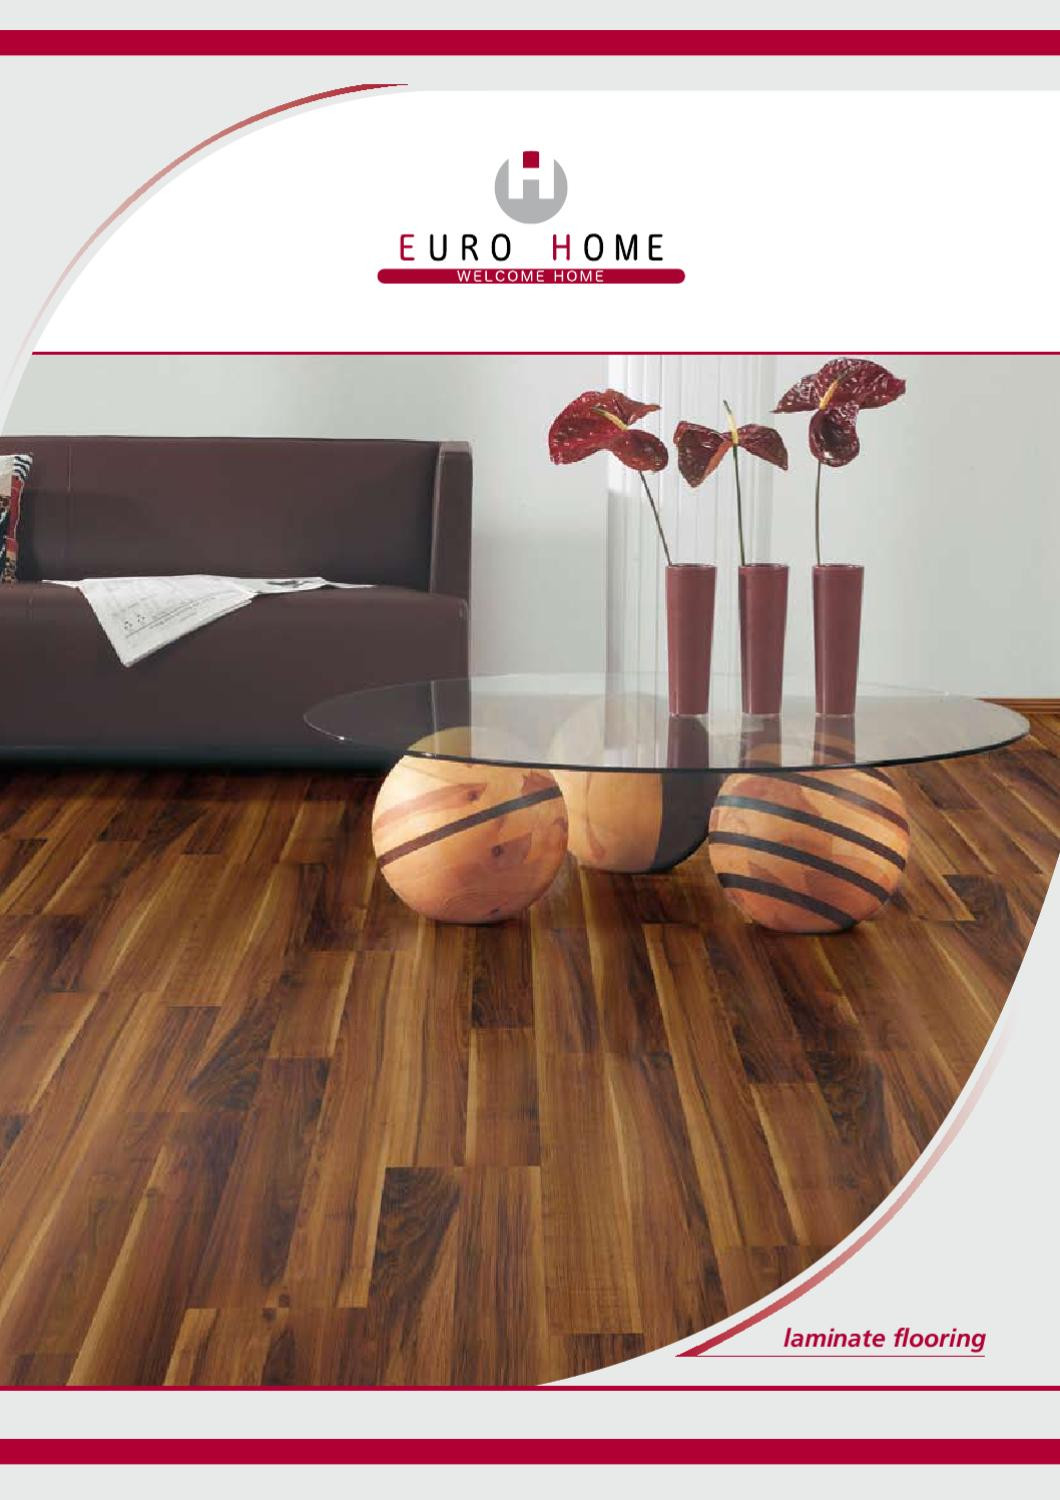 hardwood flooring windsor ontario of eurohome catalogue by kronospan spain issuu for page 1